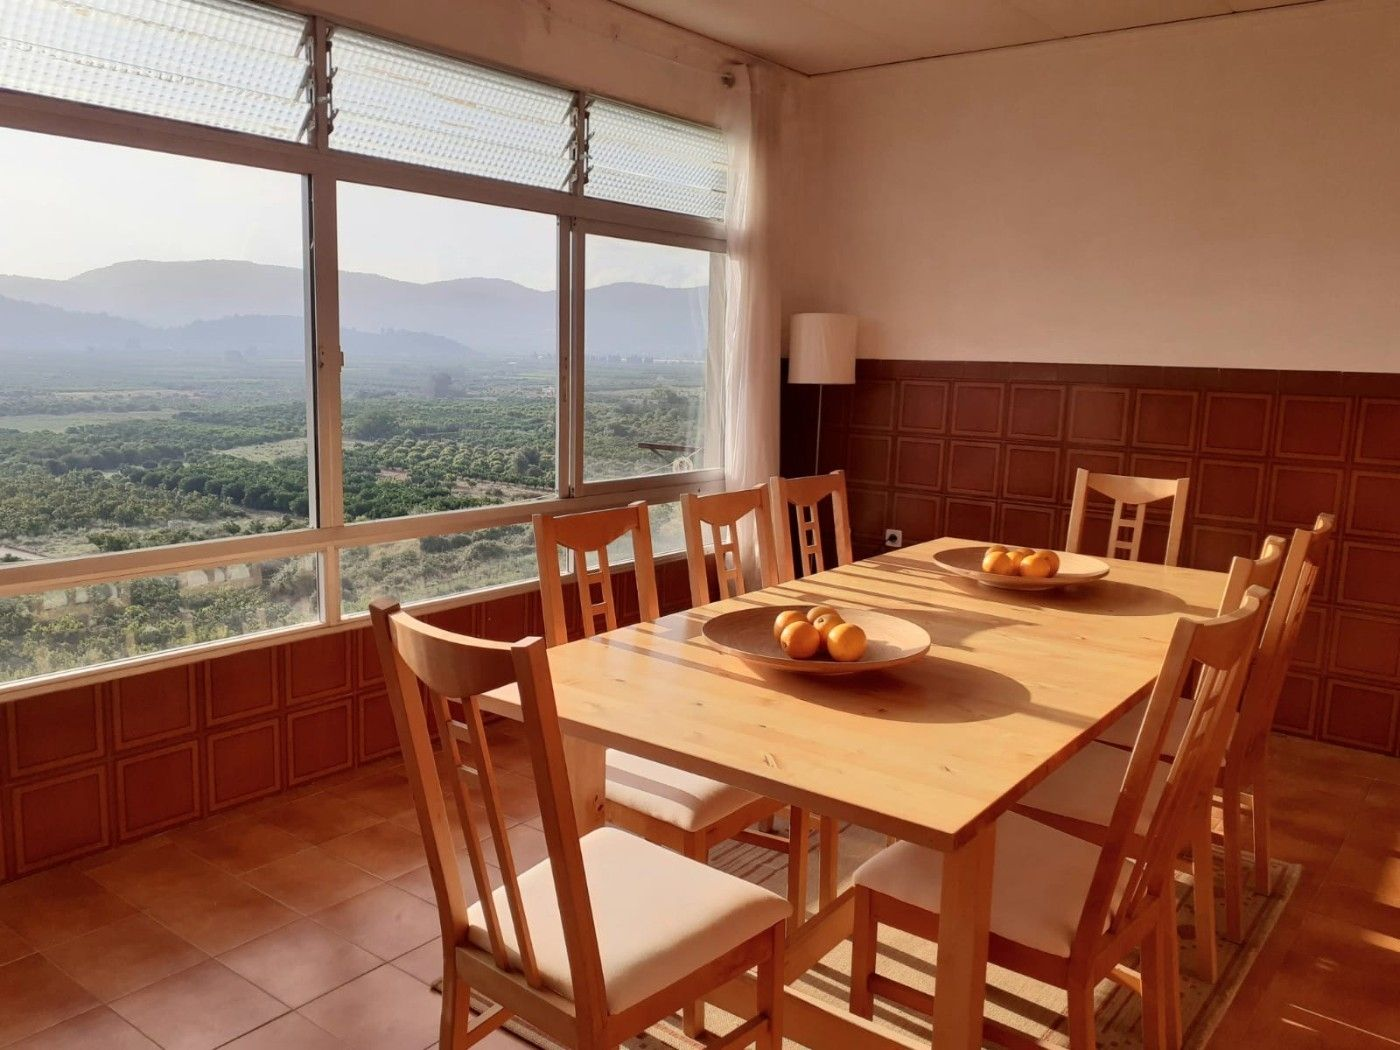 Appartement  Avenida safor (la). Piso con vistas espectaculares